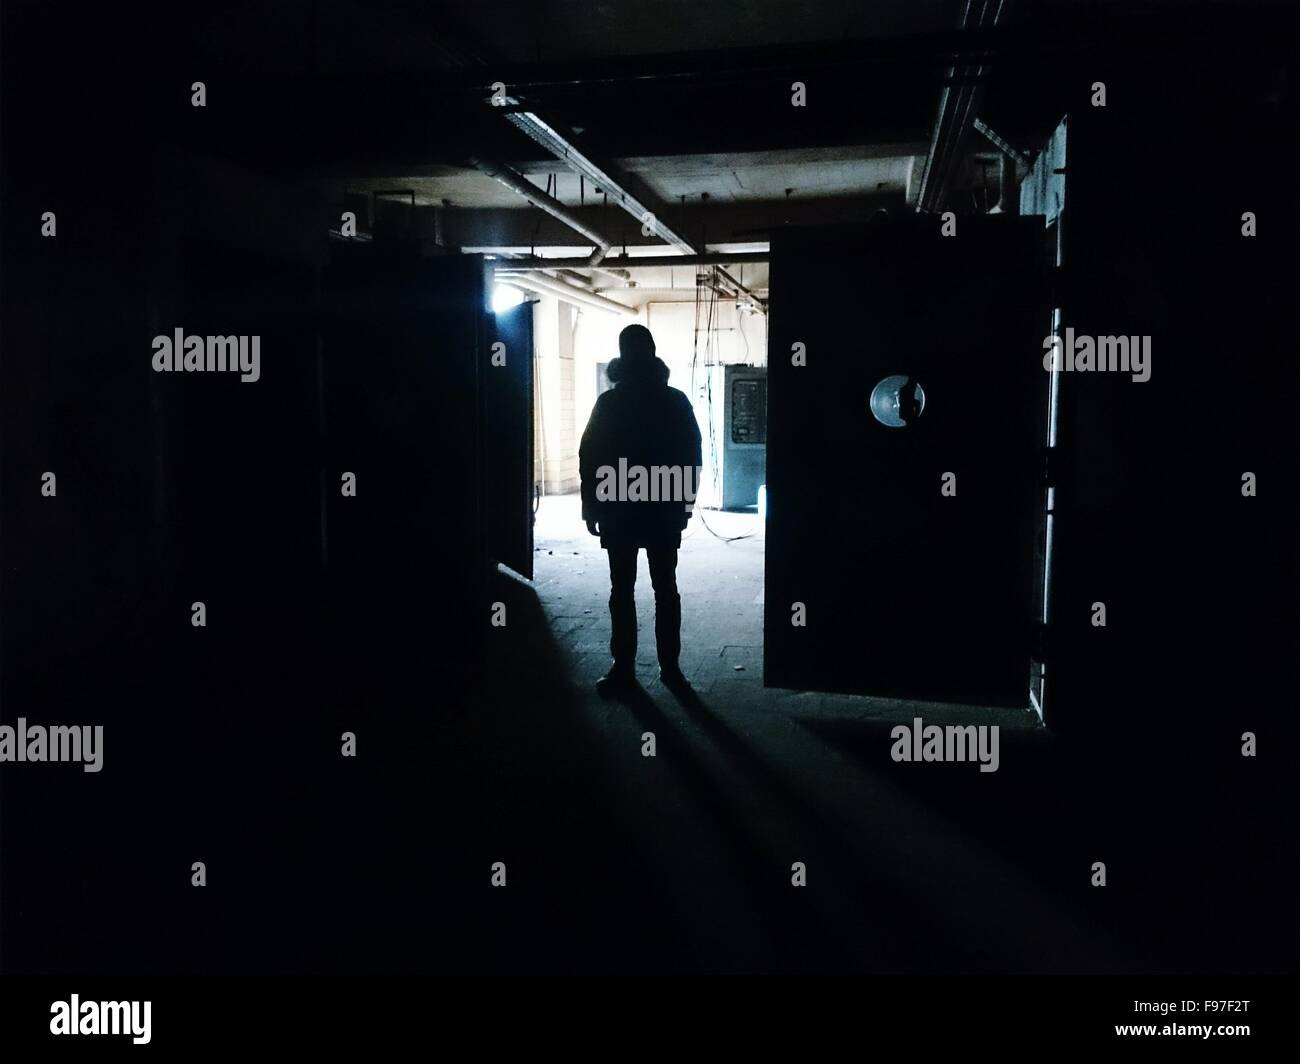 Silhouette Of Man Standing In Dark Building - Stock Image